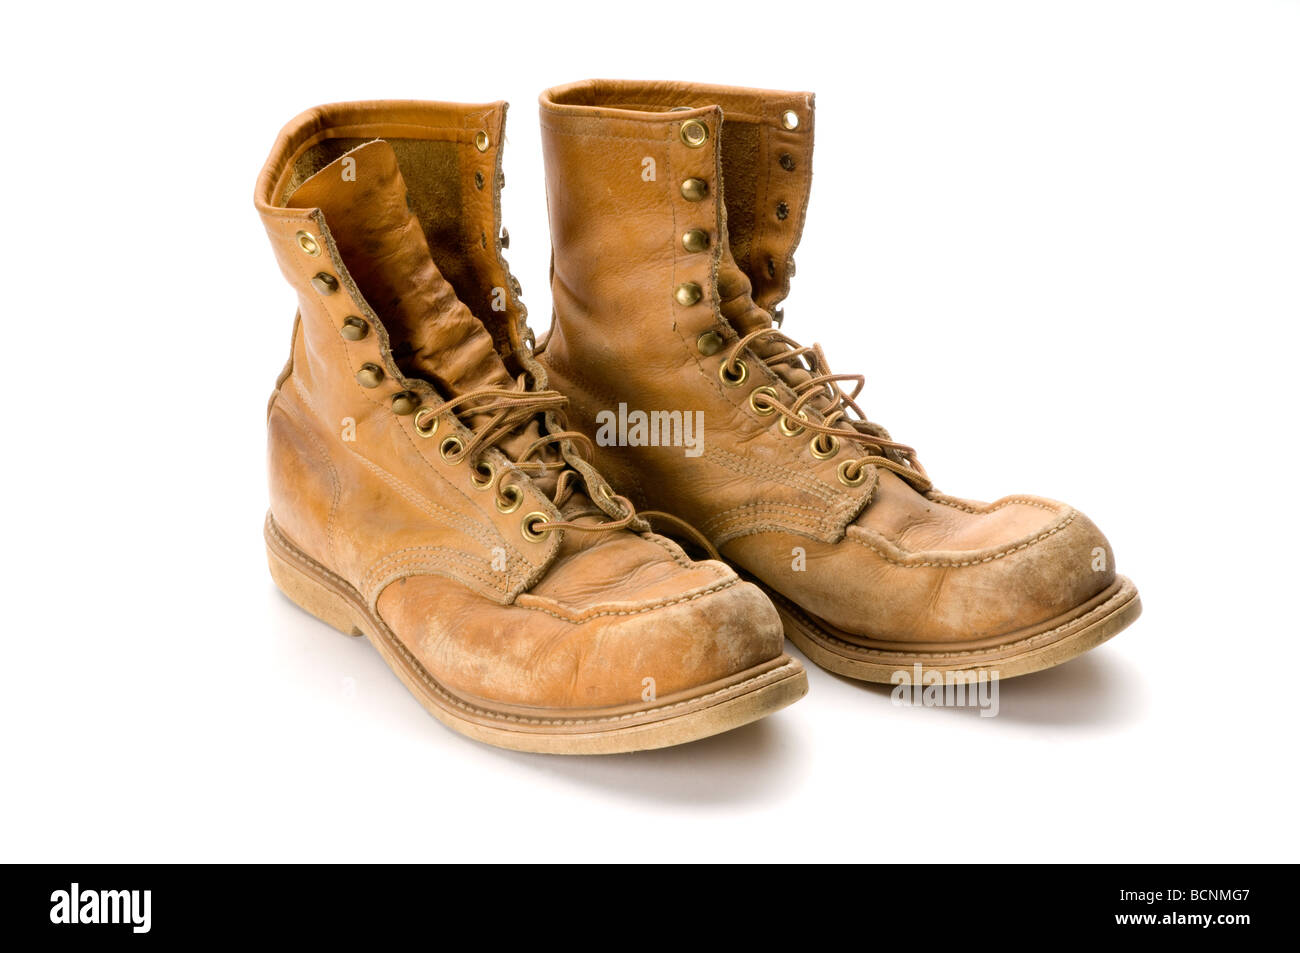 Old Boot Stock Photos Images Alamy Cut Engineer Apple Safety Boots Iron Leather Brown Steel Toed Work On White Background Image